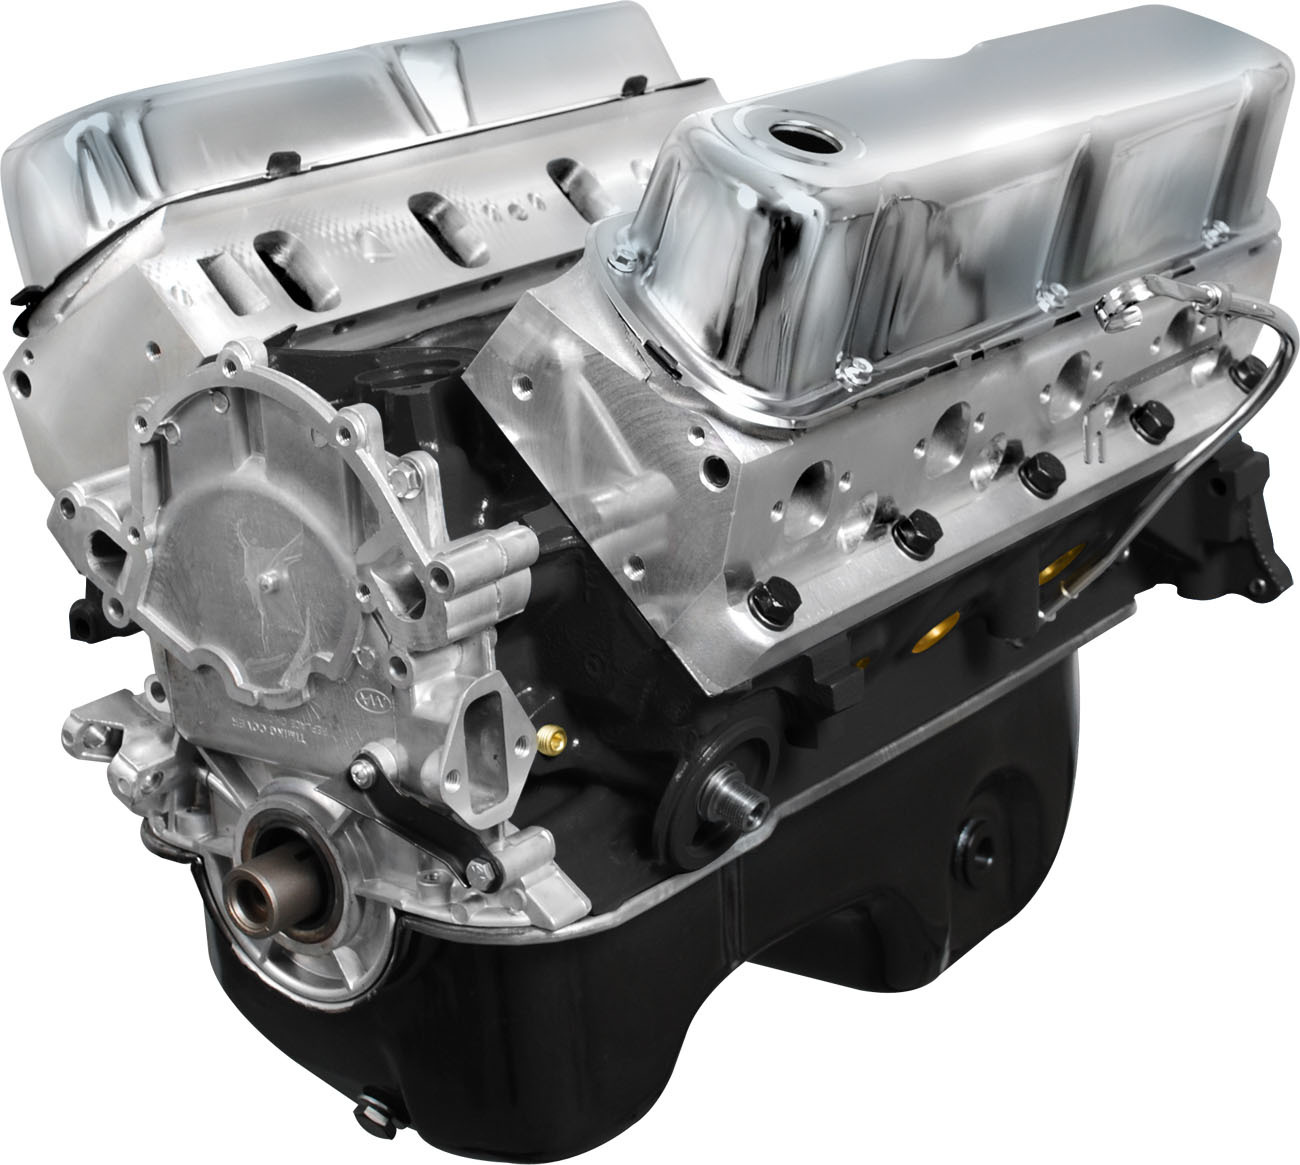 Blueprint Engines BP3474CT Crate Engine, Base Engine, 347 Cubic Inch, 415 HP, Small Block Ford, Each